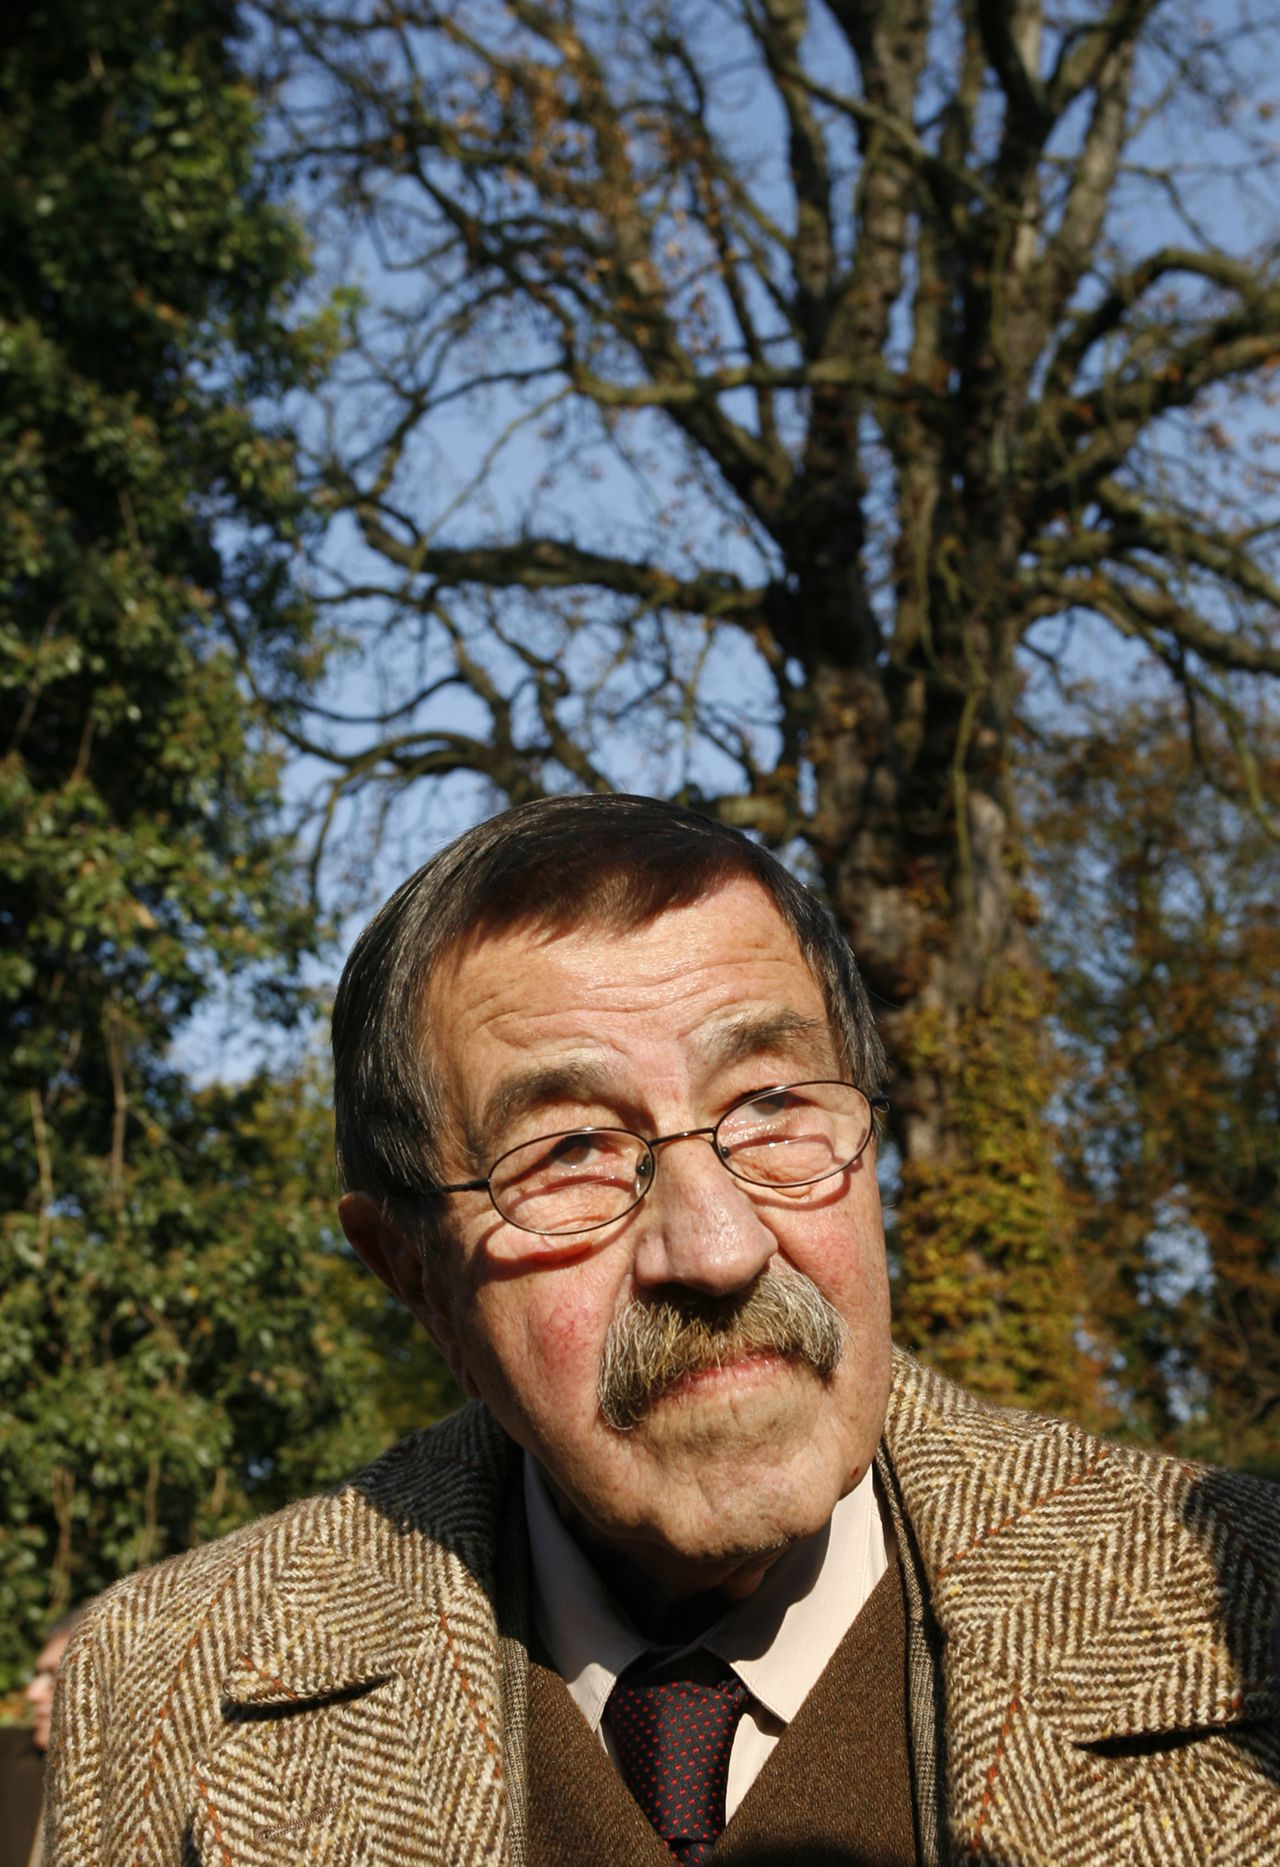 Novelist and Nobel Laureate in Literature Guenter Grass speaks to journalists in the garden of the museum 'Guenter Grass Haus' during a birthday reception for Grass in Luebeck October 27, 2007. Grass celebrated his 80th birthday on October 16, 2007. REUTERS/Christian Charisius (GERMANY)